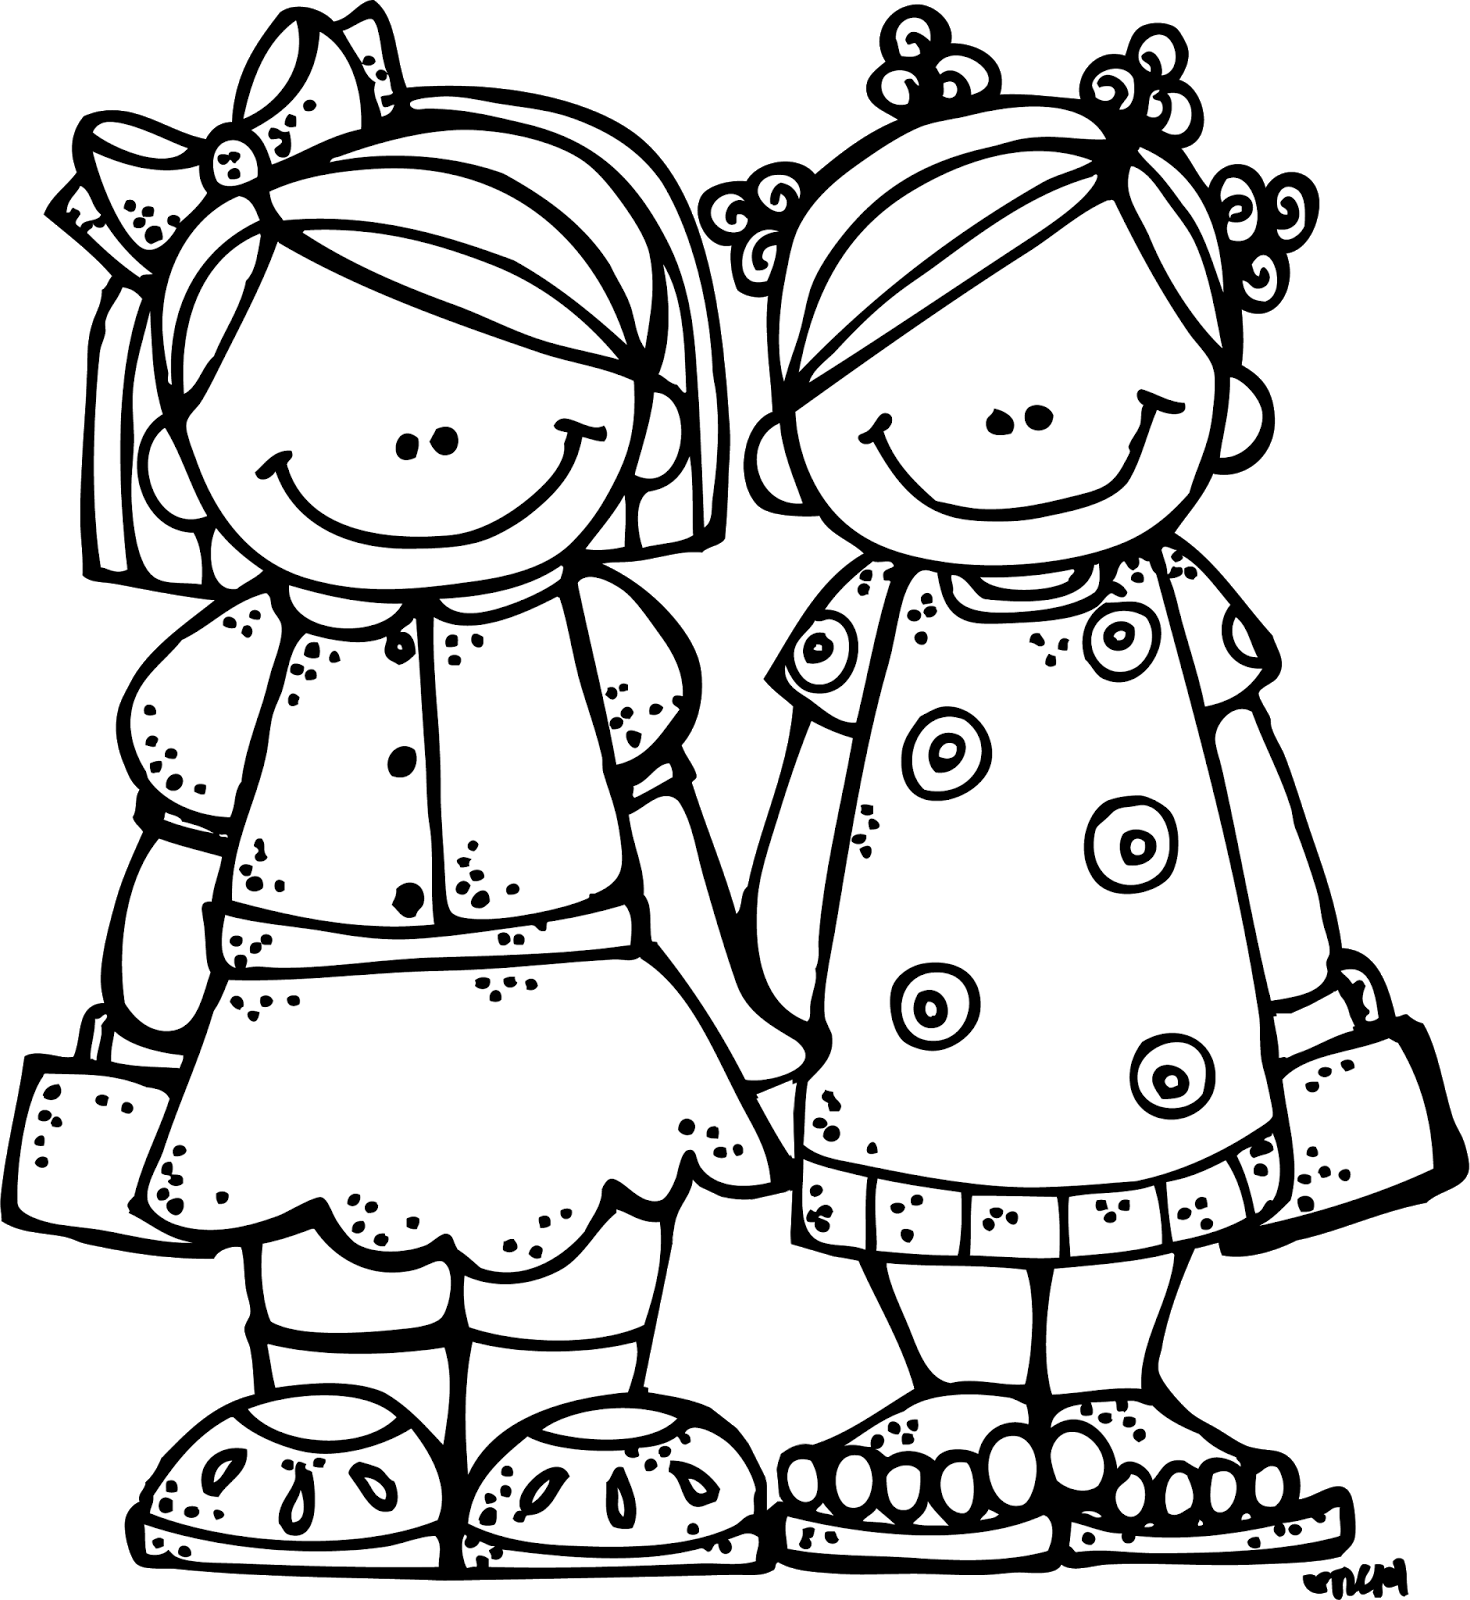 Siblings png black and. Drawing friendship best friends together picture free